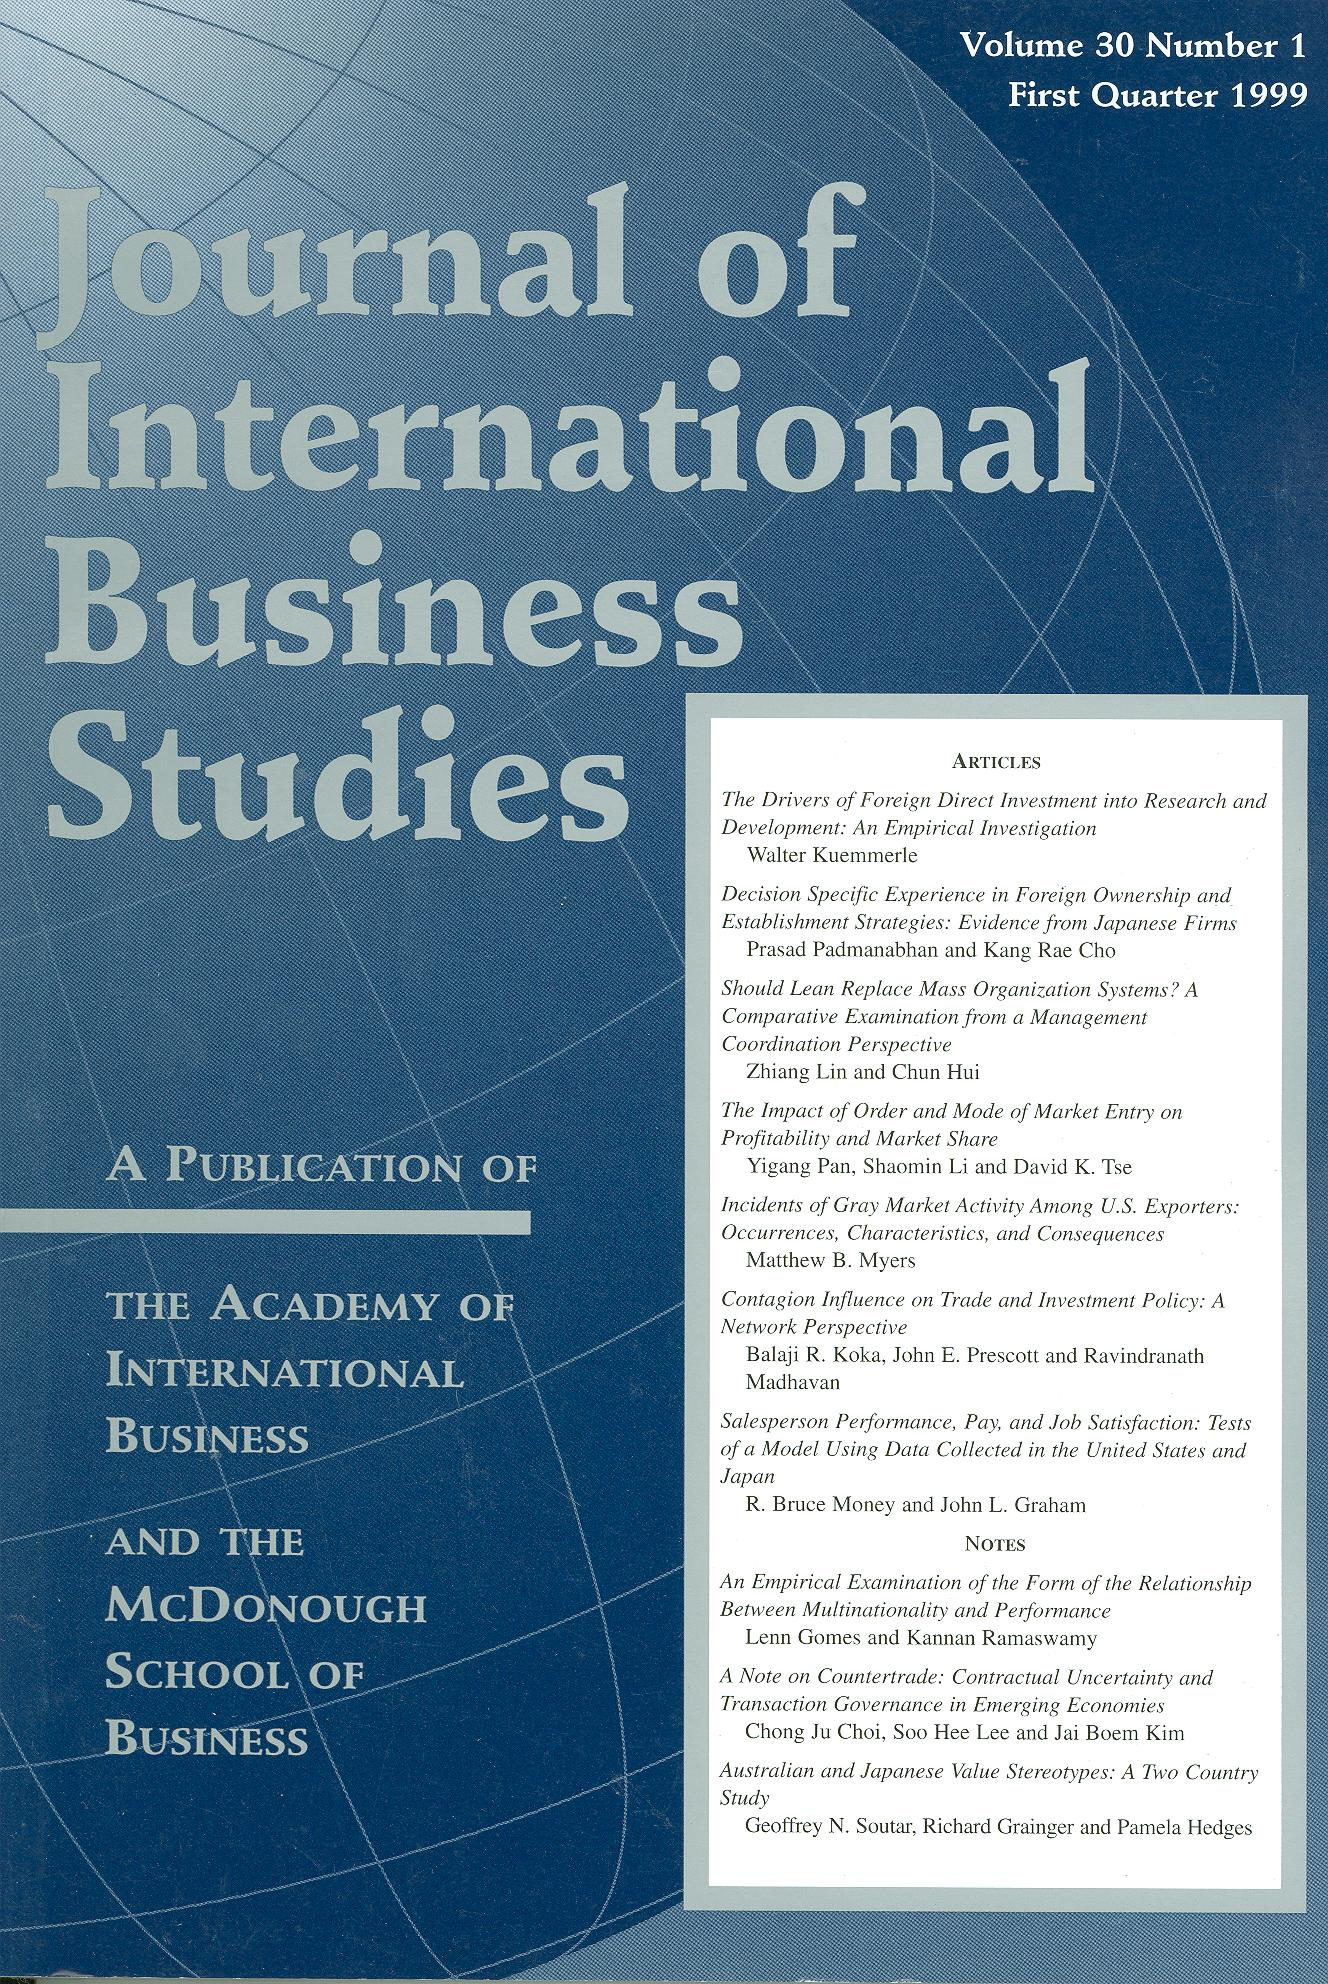 Cover design from a 1999 issue of JIBS